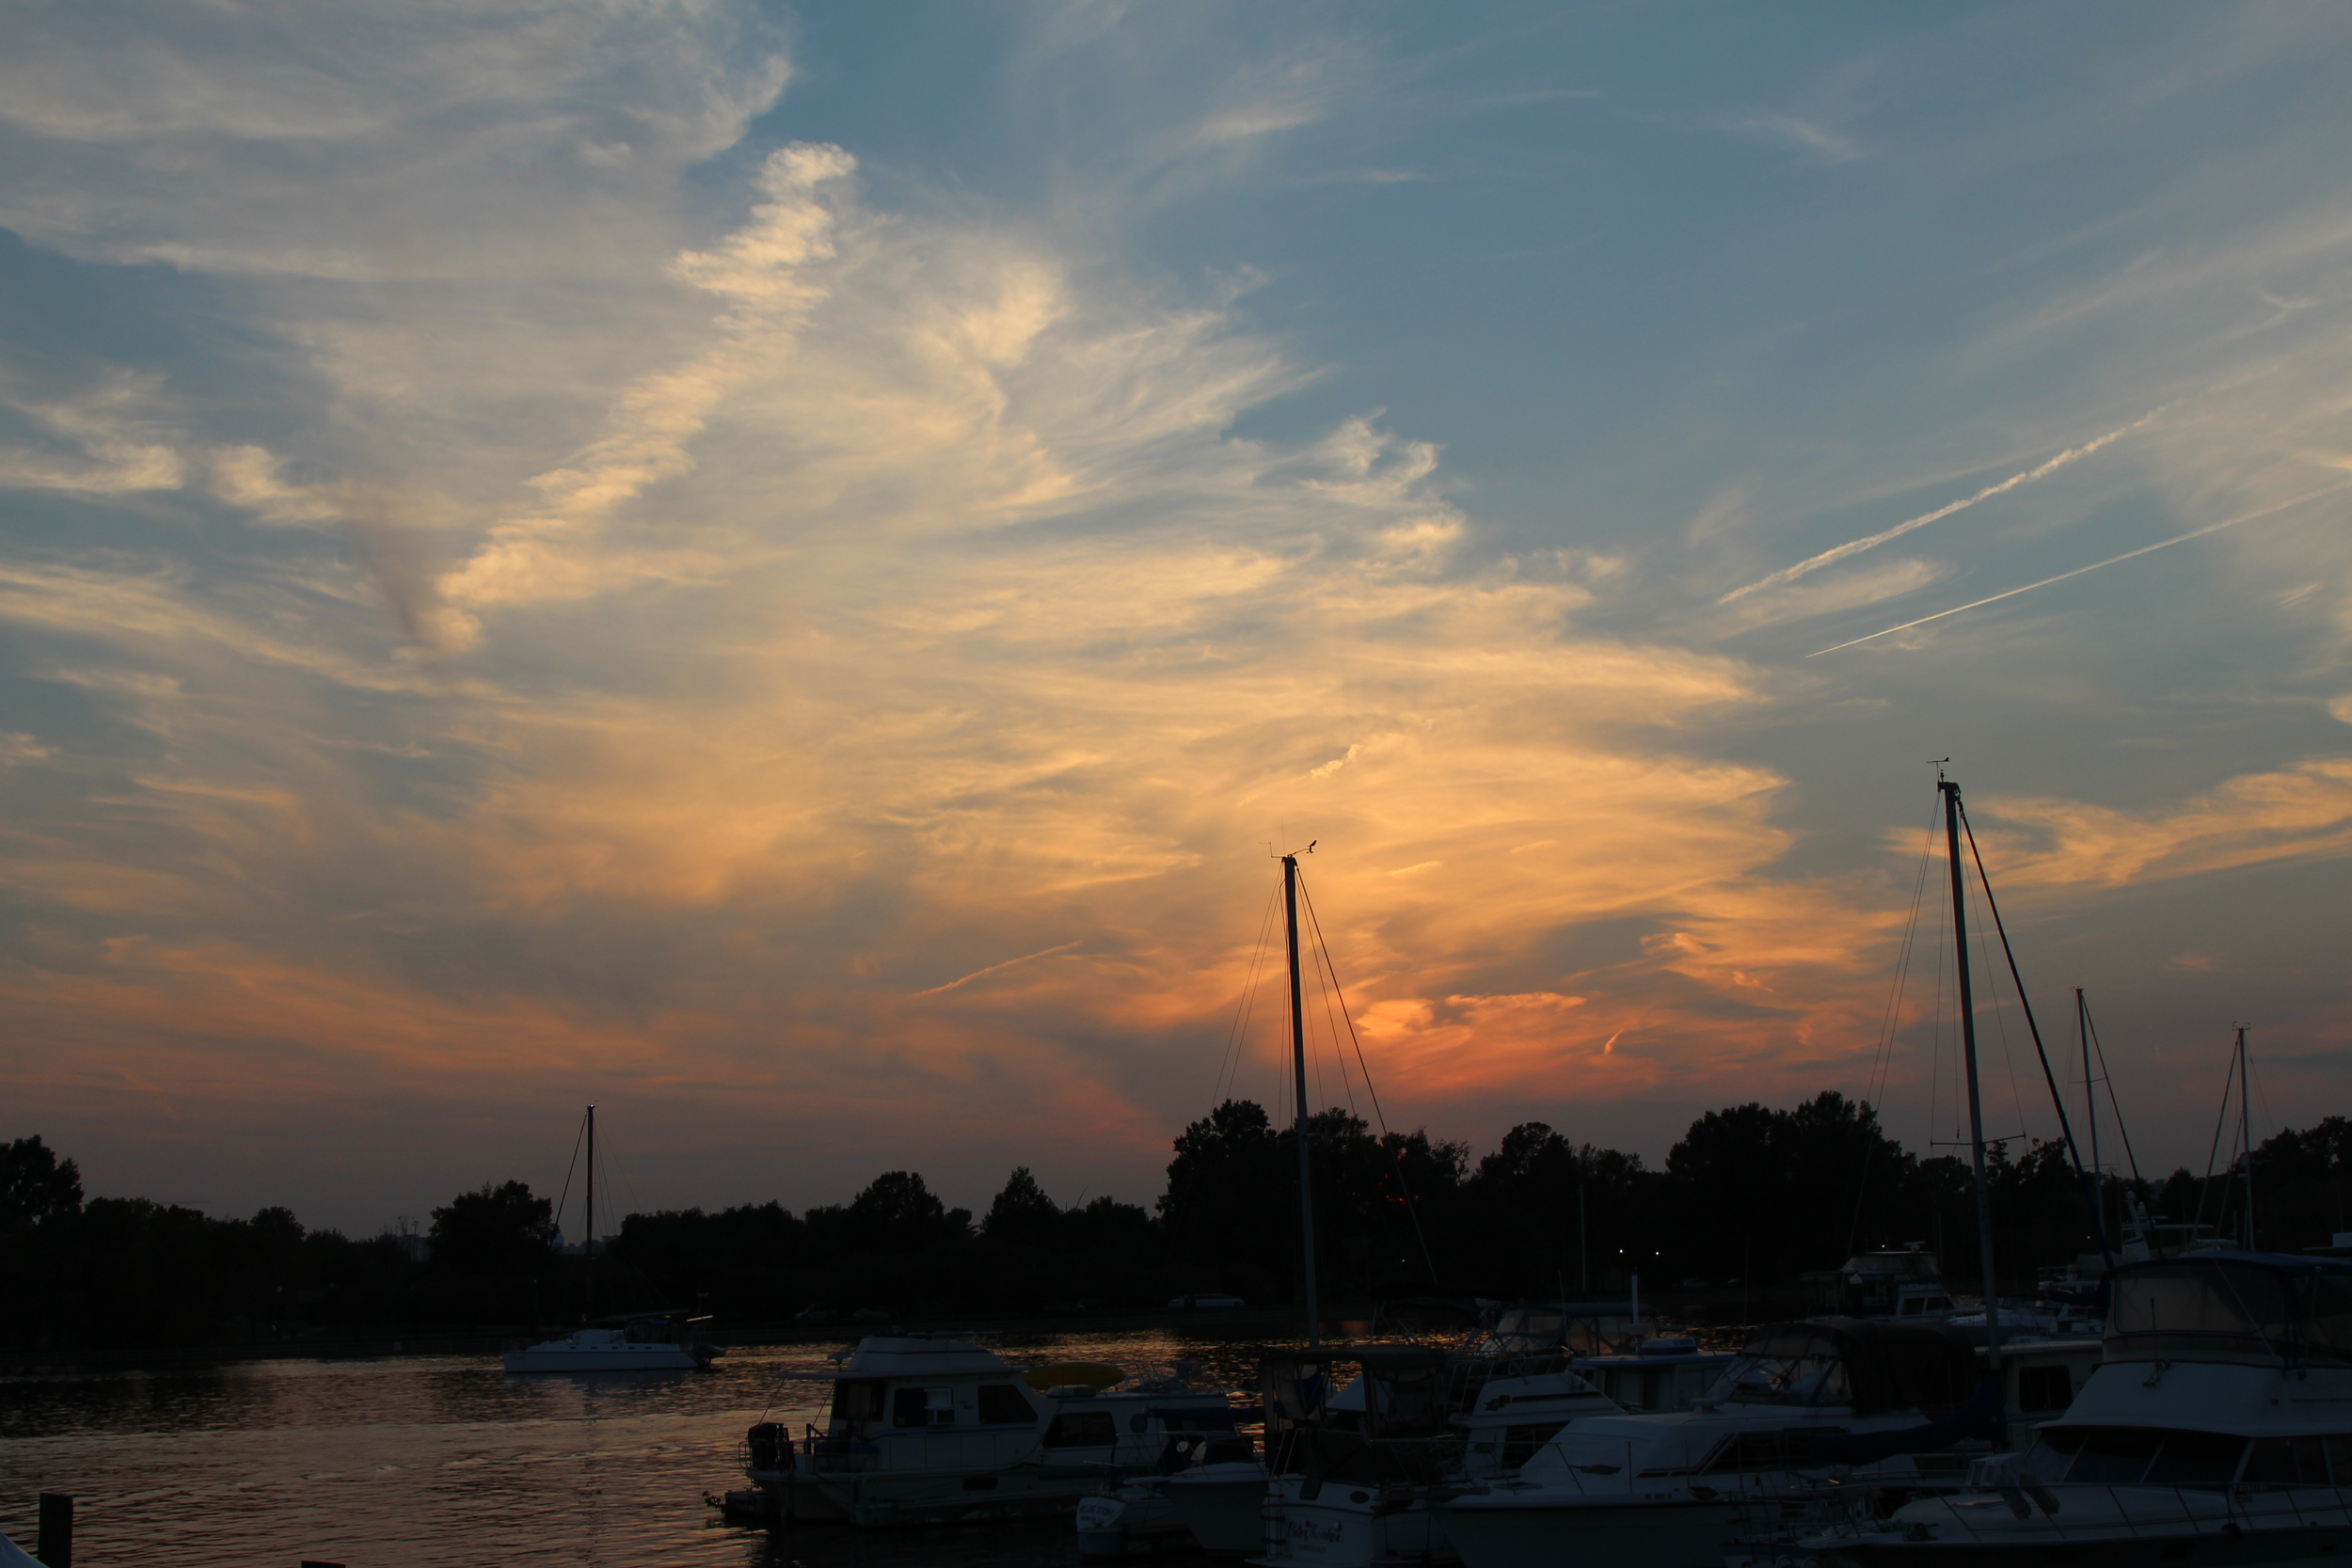 View of the early evening sky from one of the boats bobbing on Gangplank Marina. Photo credit: Amel Guettatfi